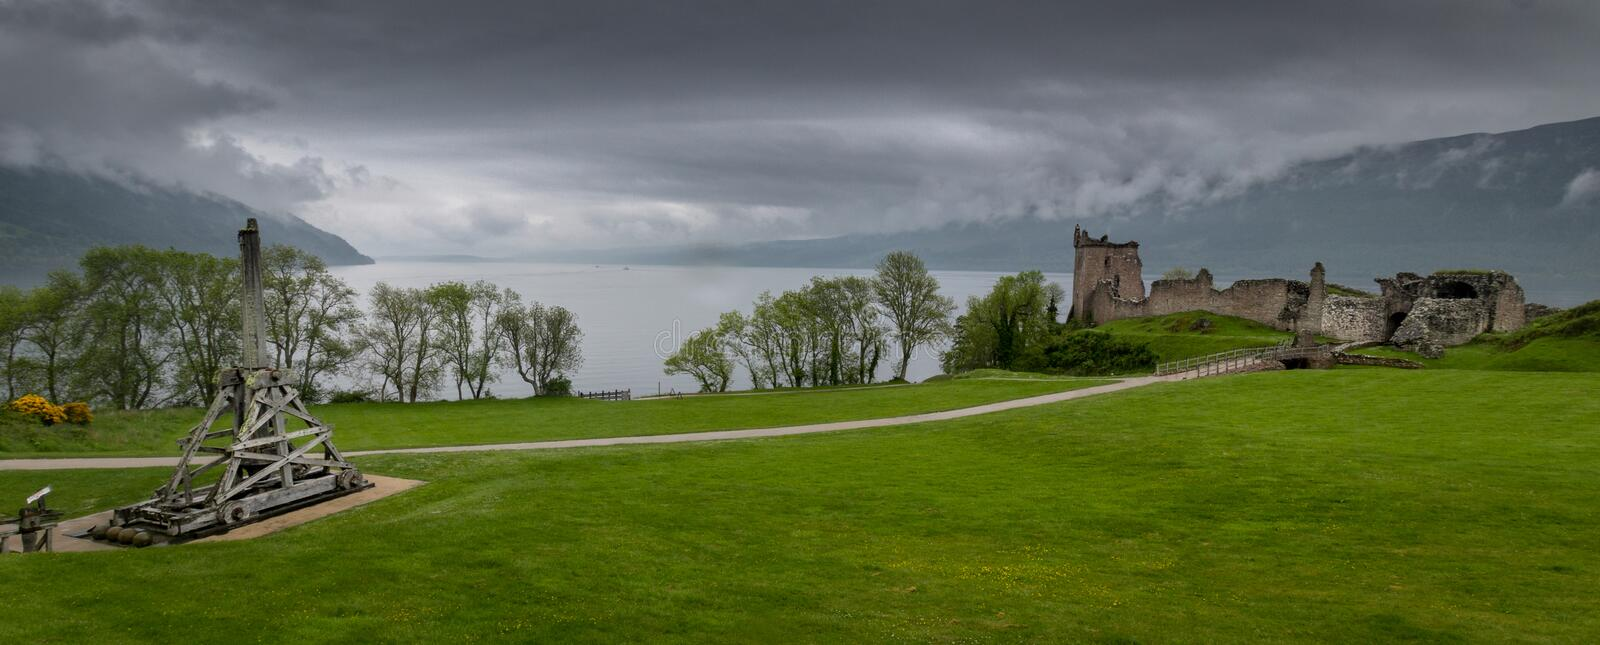 Urquhart Castle and Catapult stock photos